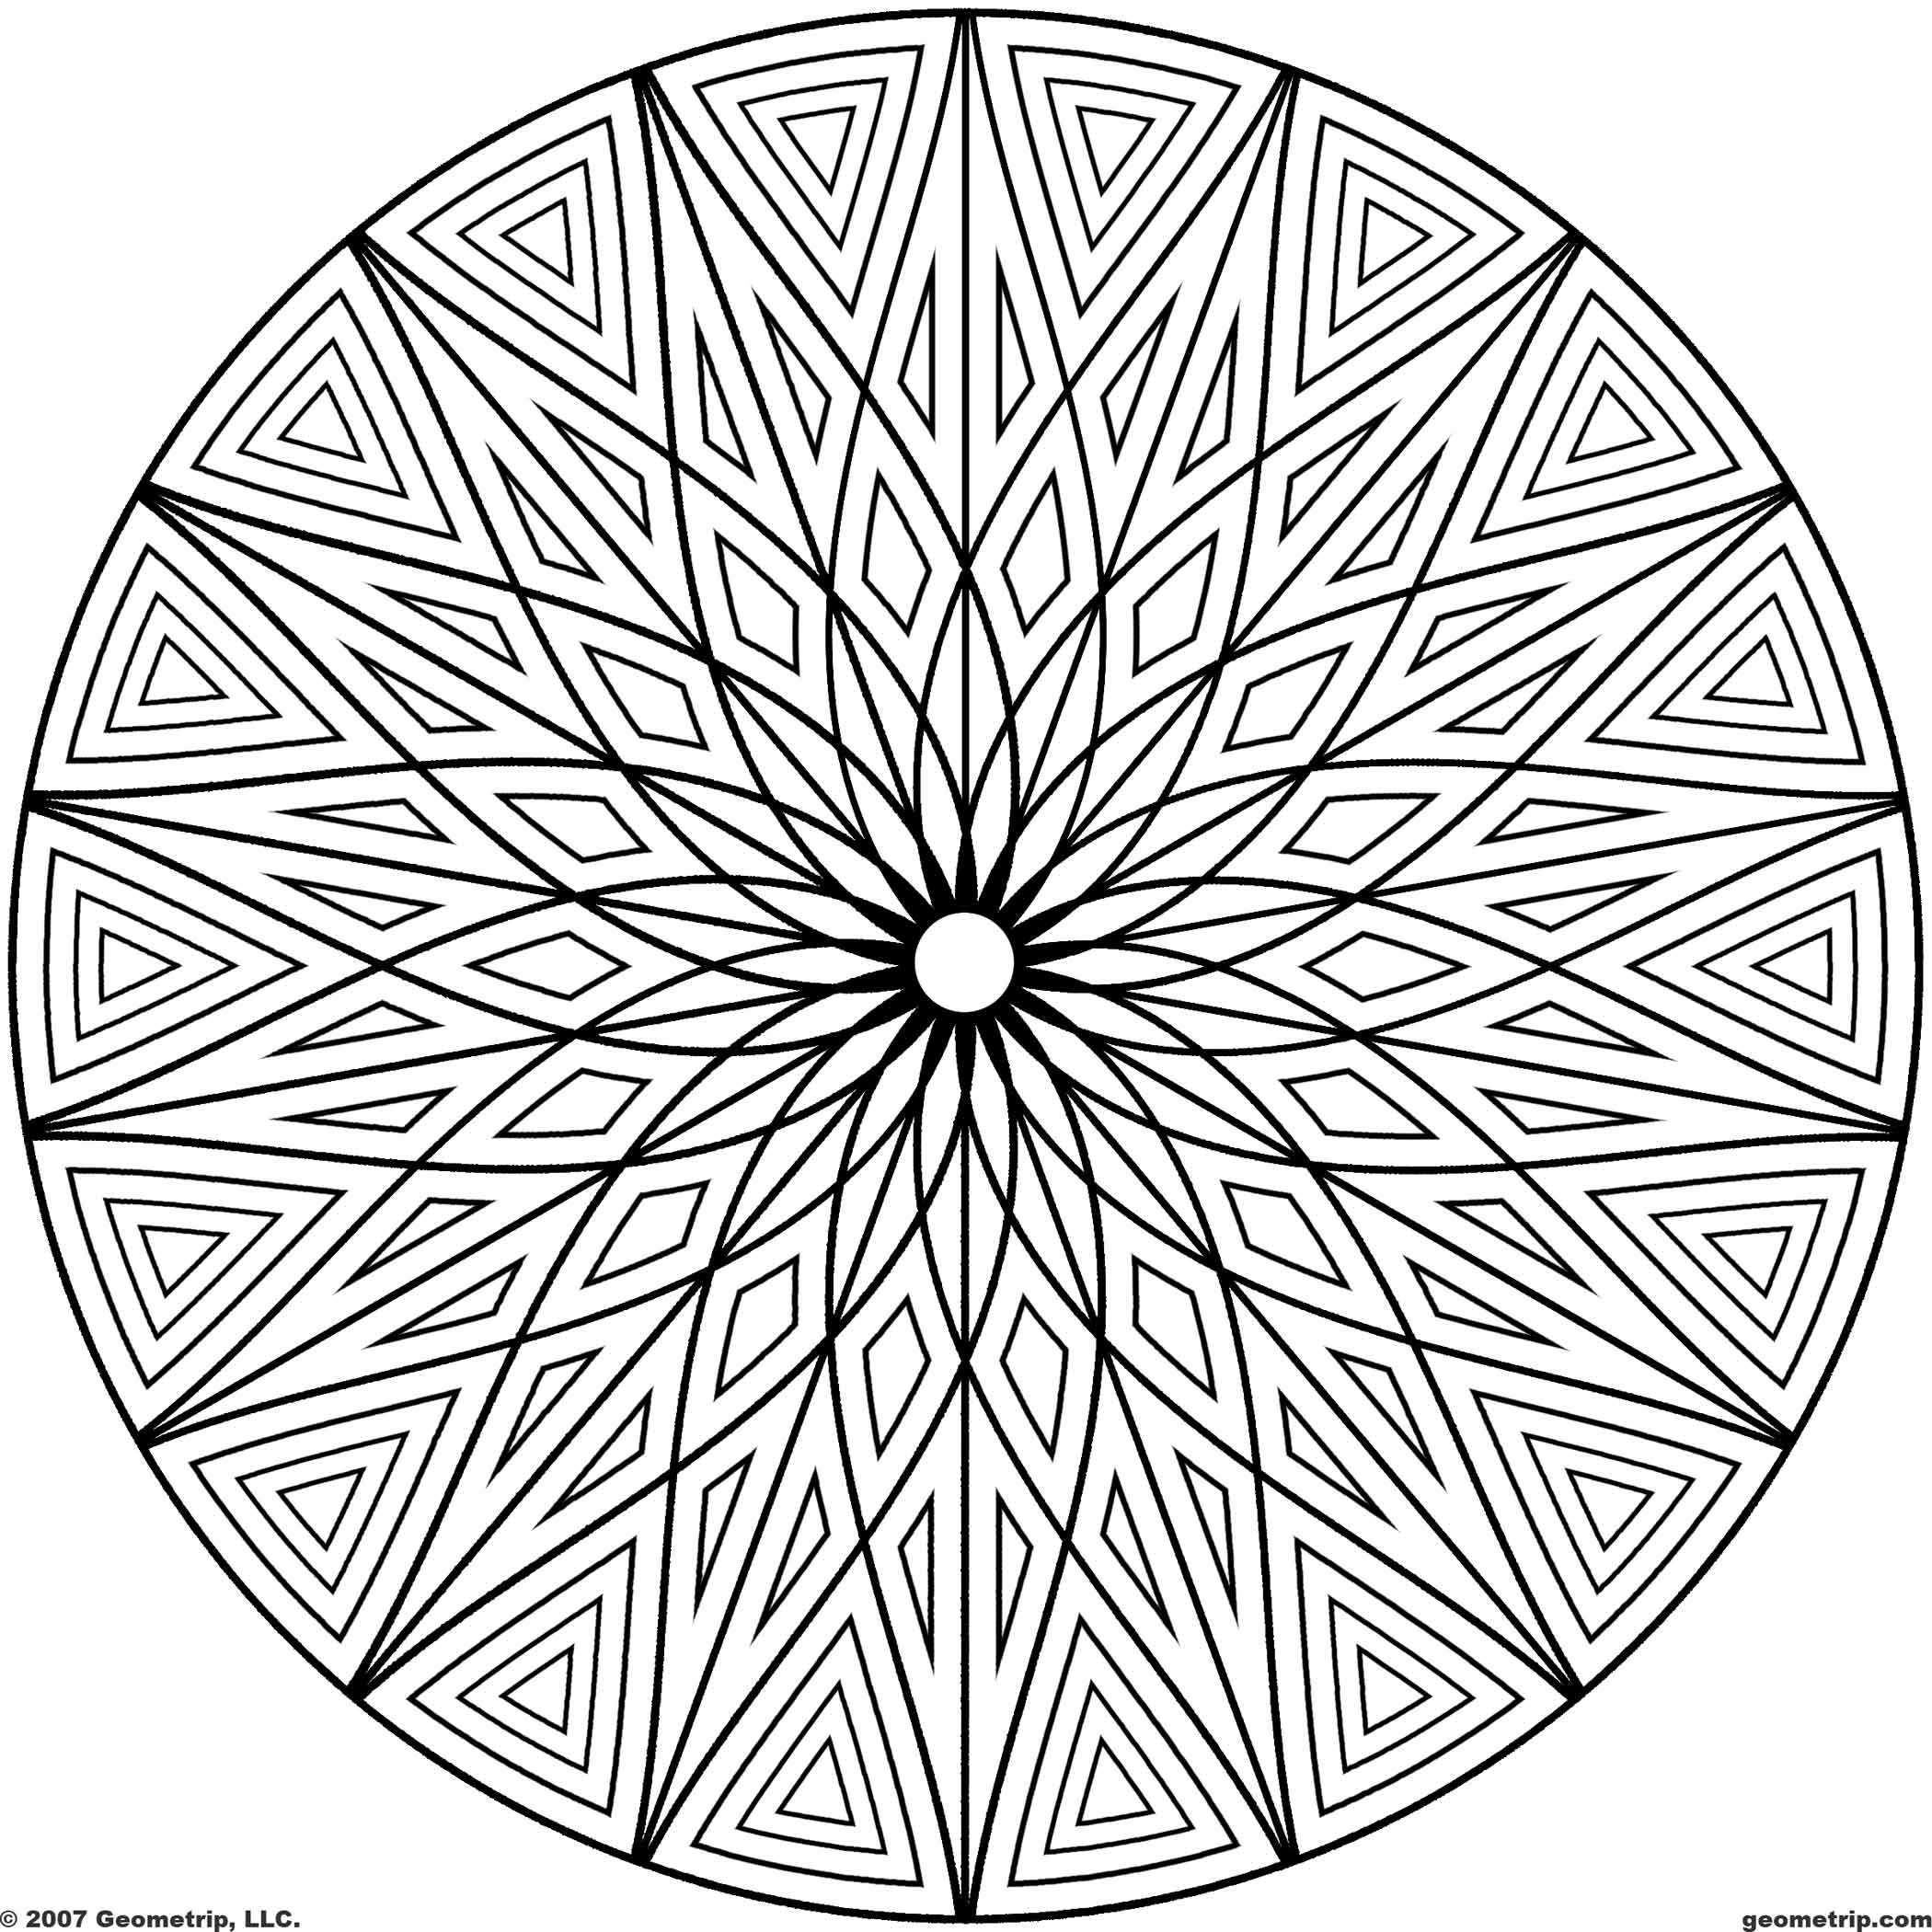 Hard kaleidoscope coloring pages - Coloring Pages Free Printable Coloring Pages For Adults Geometric